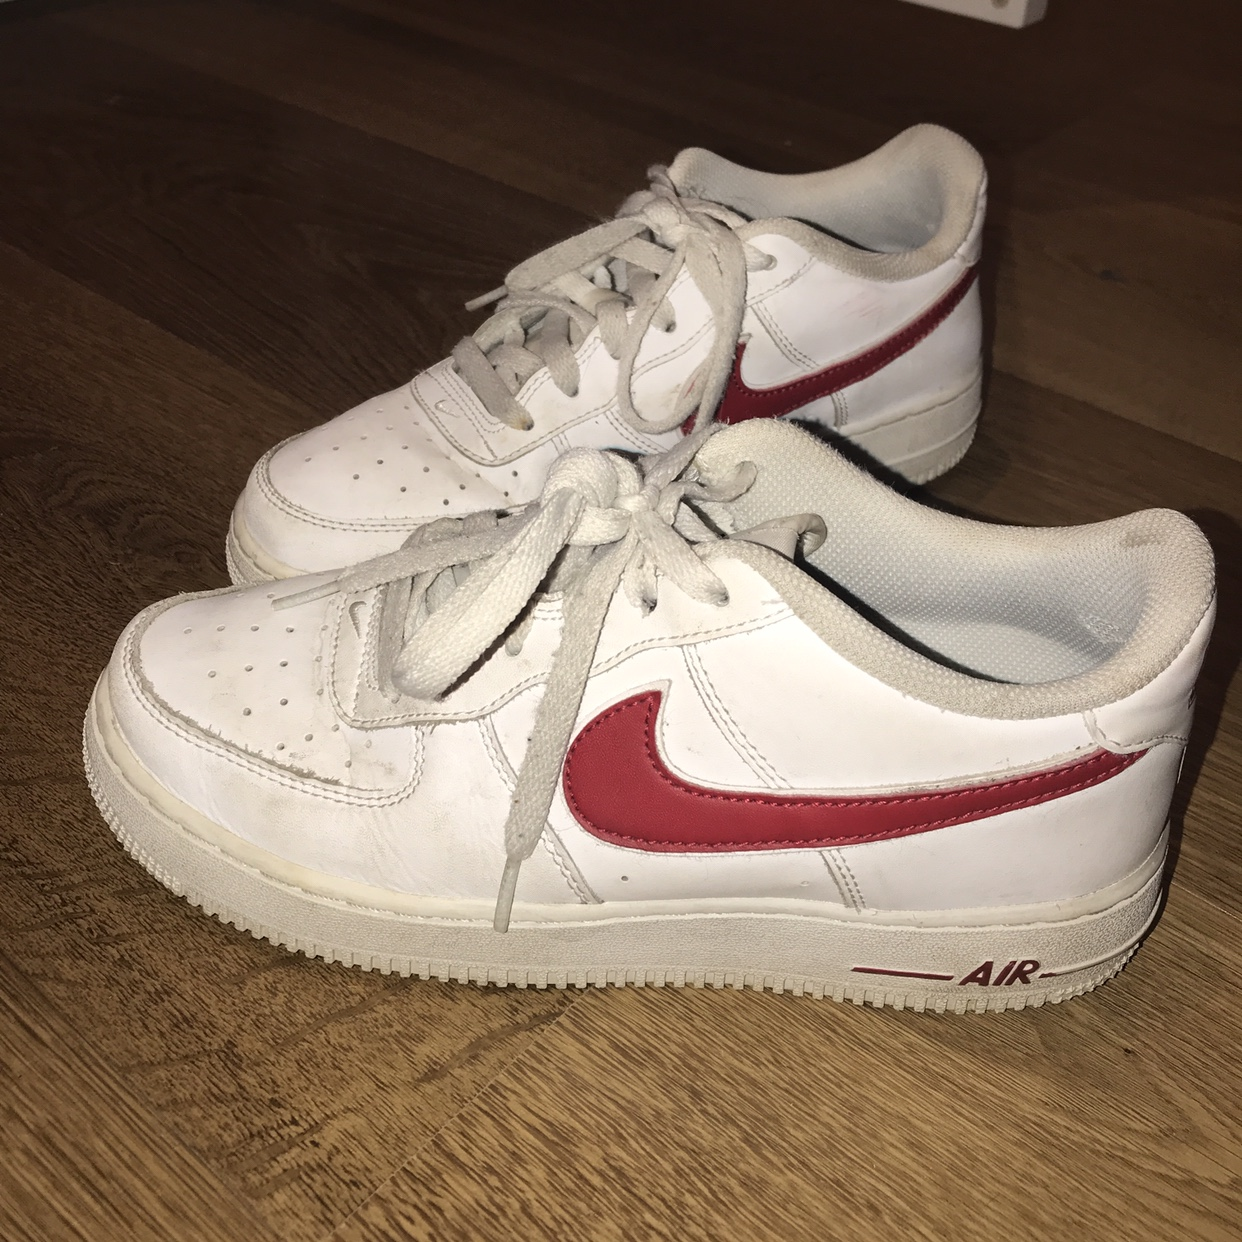 White and red tick Nike Air Force